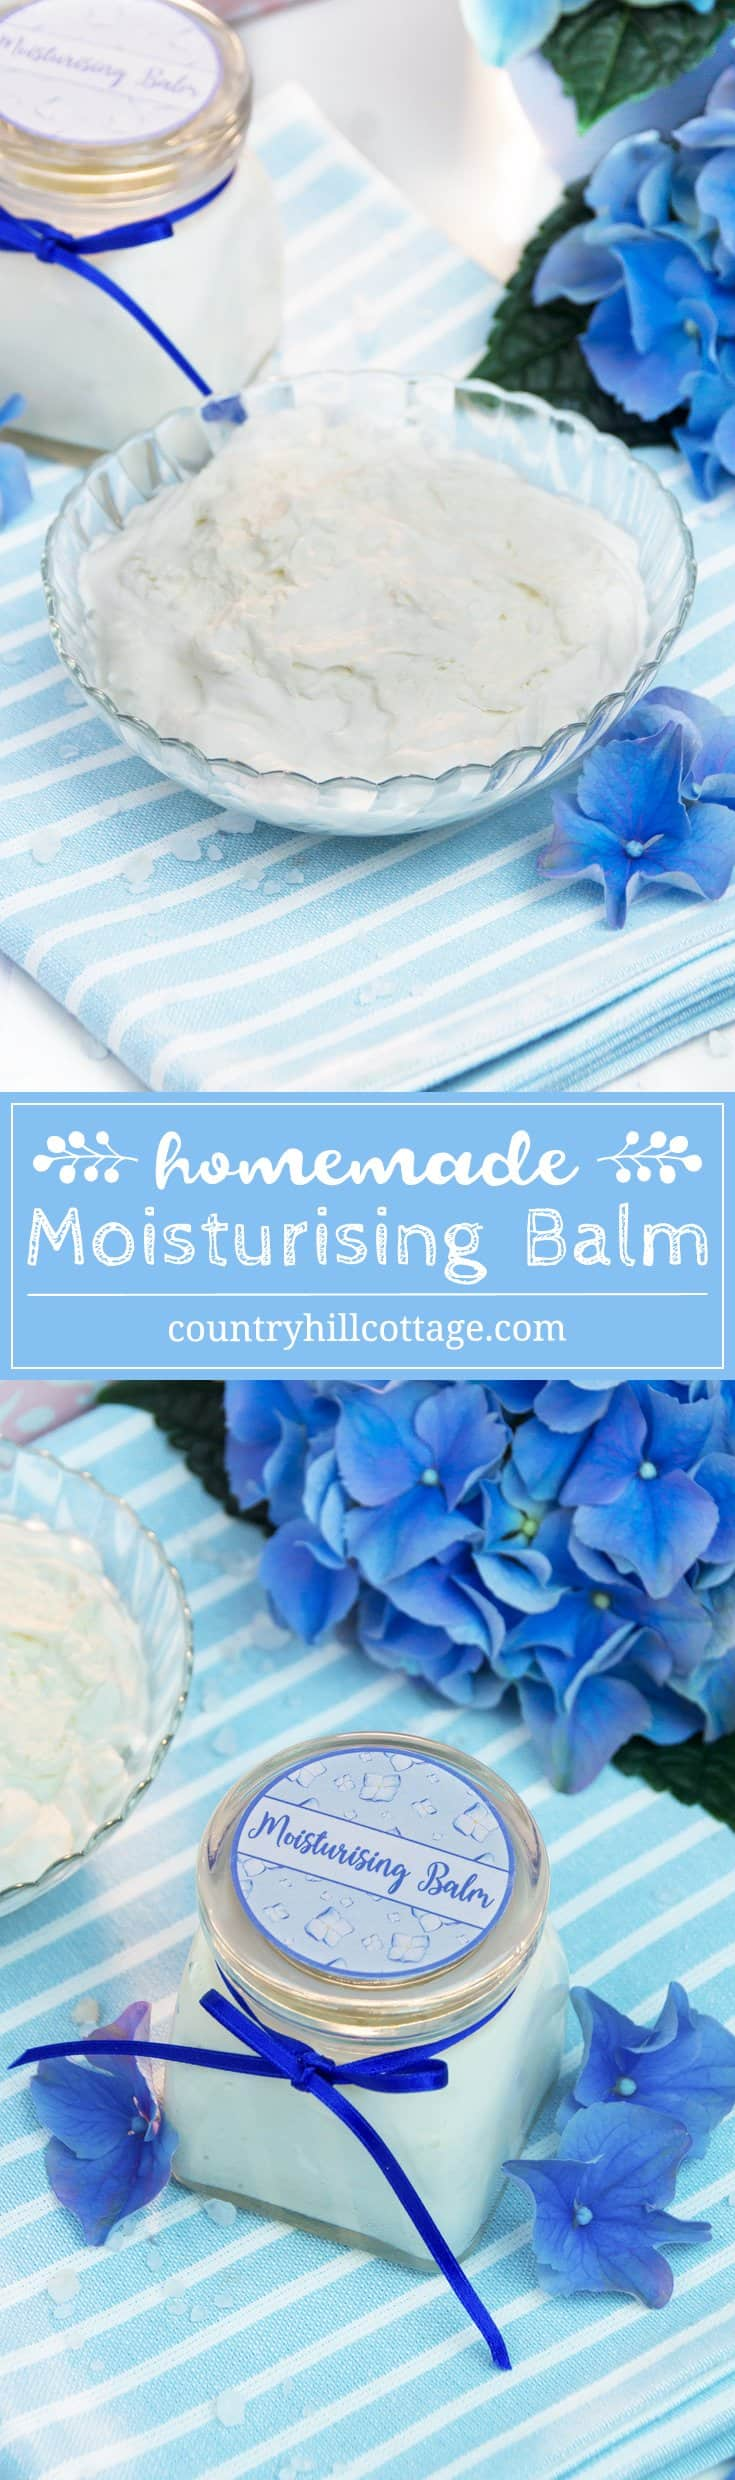 Replenish your skin with a homemade moisturising balm! This light moisturiser with all-natural ingredients retains moisture in the skin without being heavy on the skin. Shea butter nourishes the skin and helps to reduce inflammation. Hemp seed oil hydrates without clogging the pores. Get the recipe and cute printable labels on our blog! #moisturizer #balm #skincare #beautyrecipe #diybeauty #clearskin | countryhillcottage.com